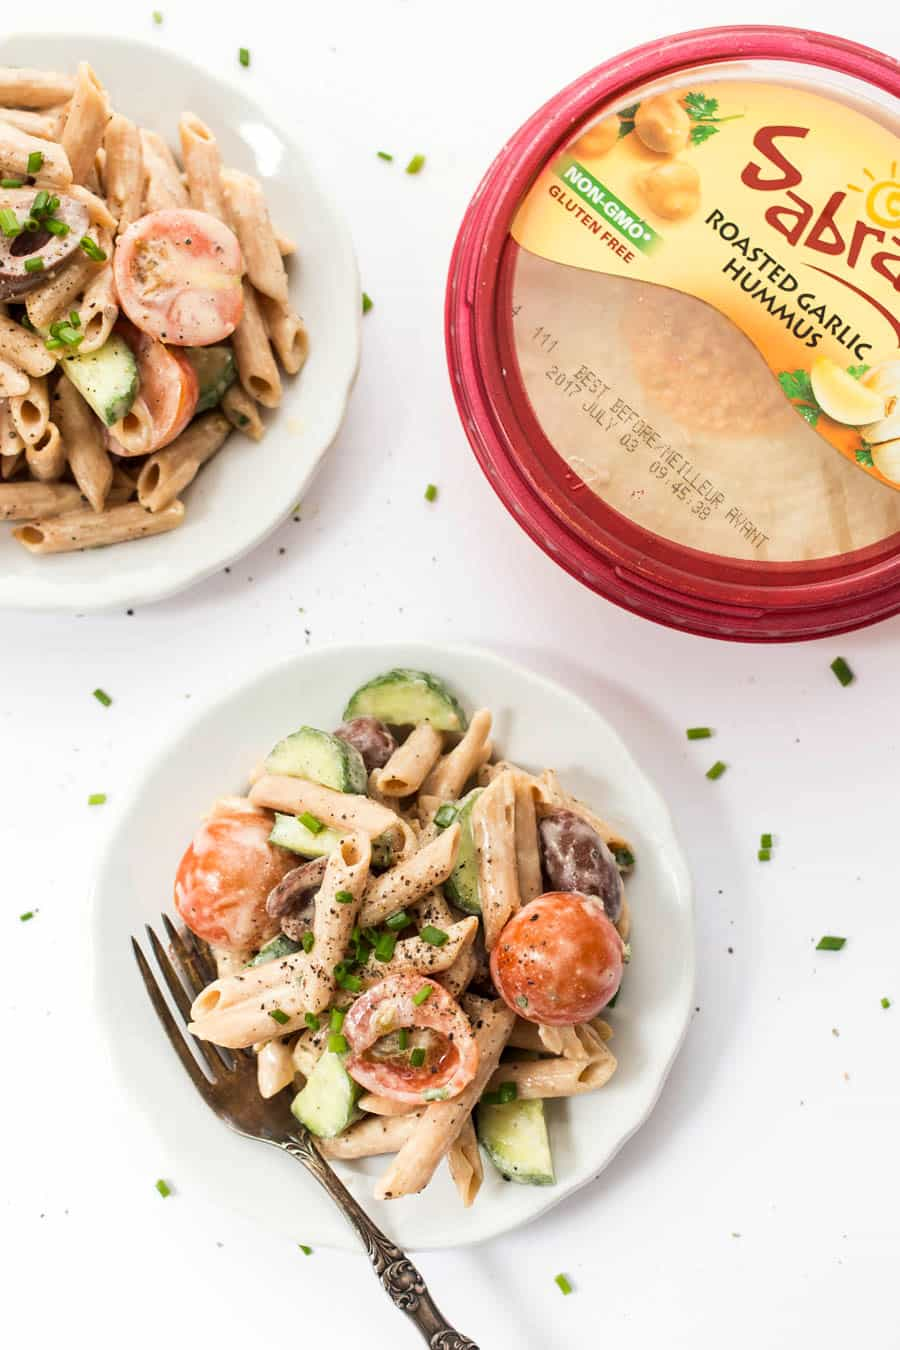 This CREAMY Mediterranean Pasta Salad is made with a delicious sauce and packed with veggies!